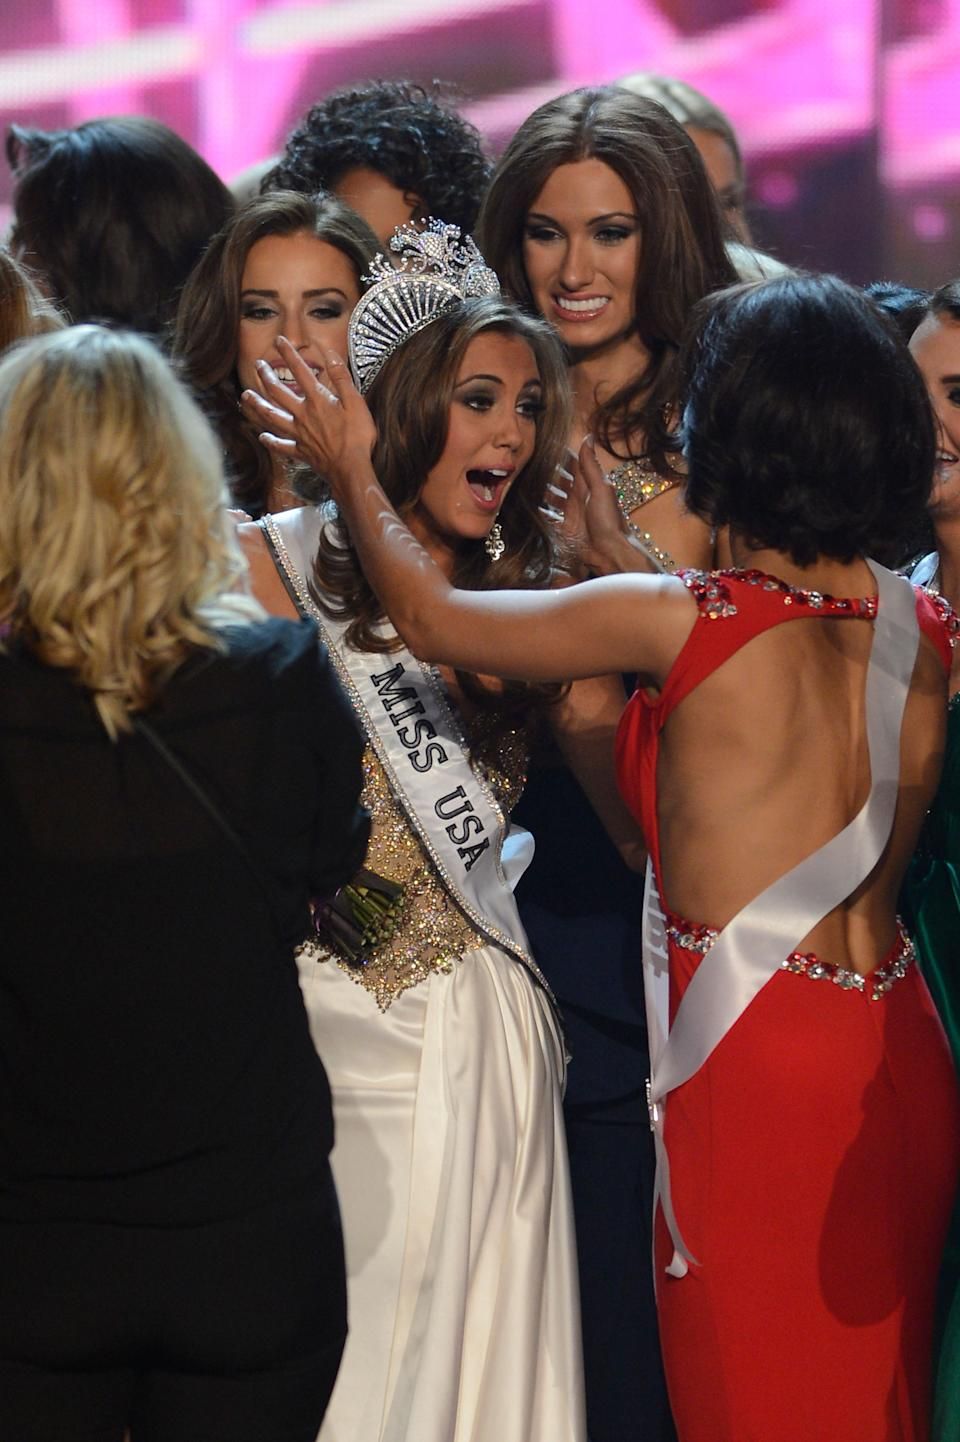 Miss Connecticut Erin Brady, center, reacts after winning the Miss USA 2013 pageant, Sunday, June 16, 2013, in Las Vegas. (AP Photo/Jeff Bottari)